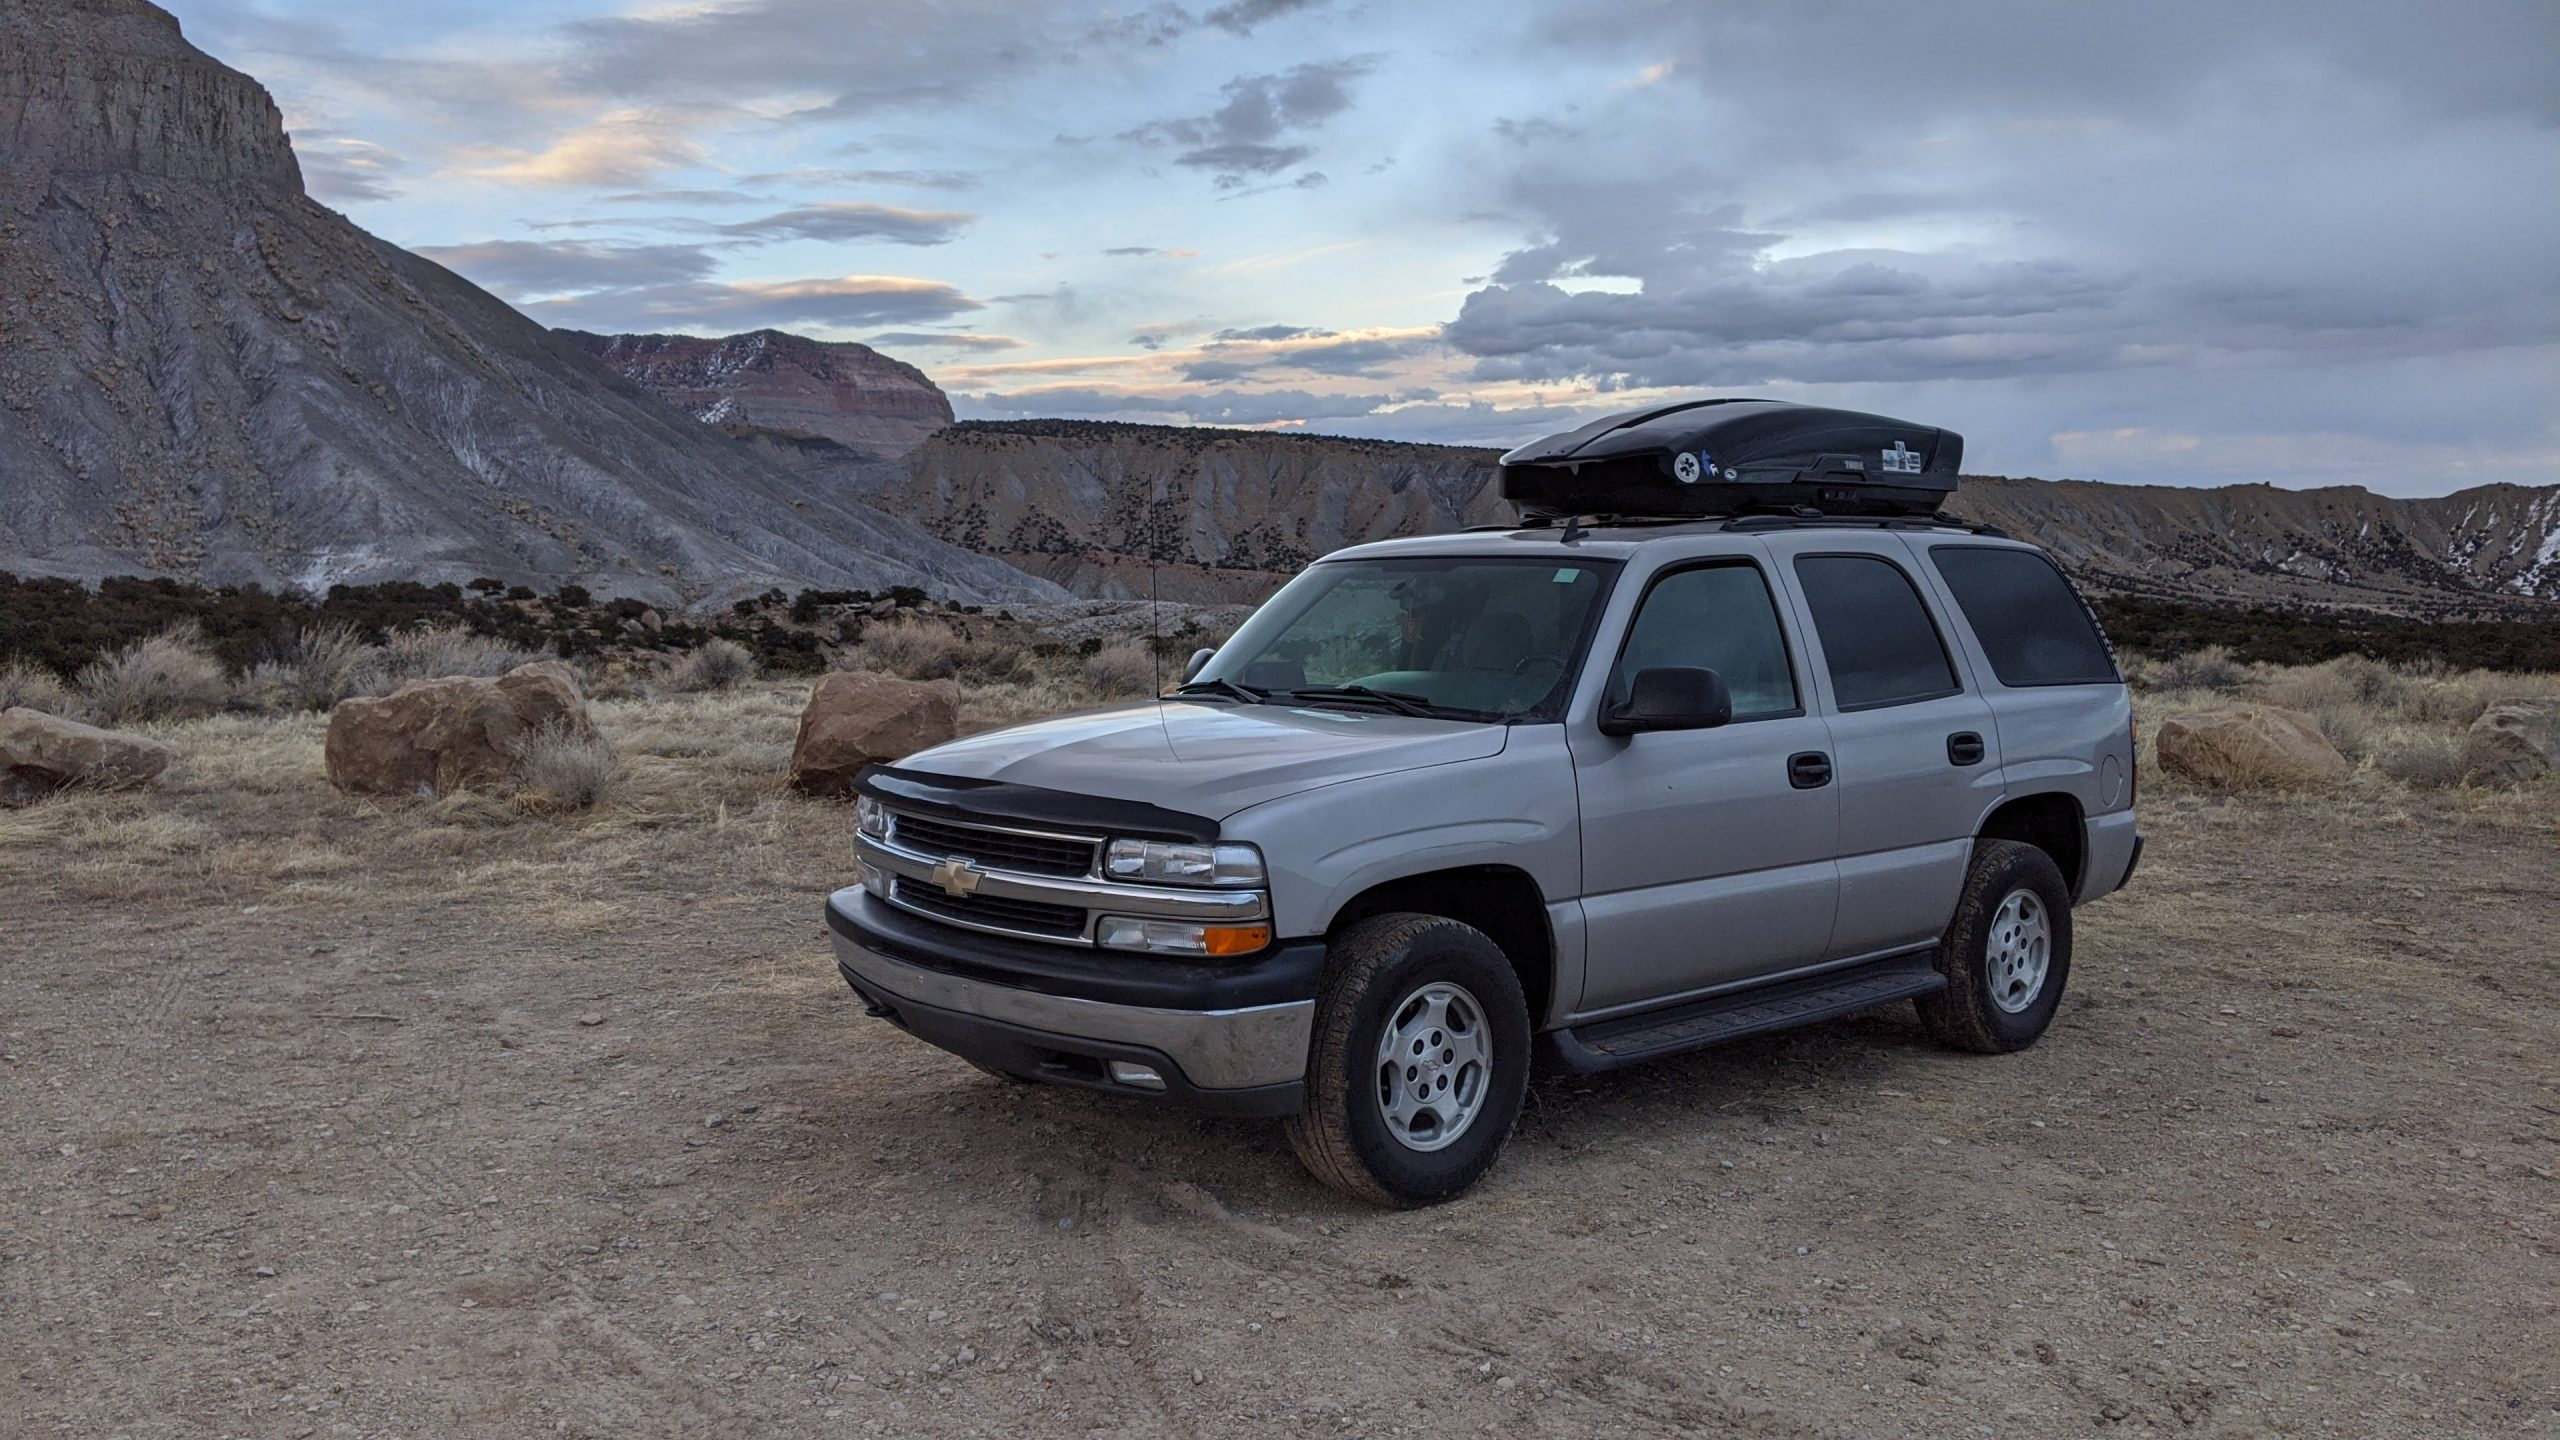 Low Budget Camper Conversion Using a Chevy Tahoe